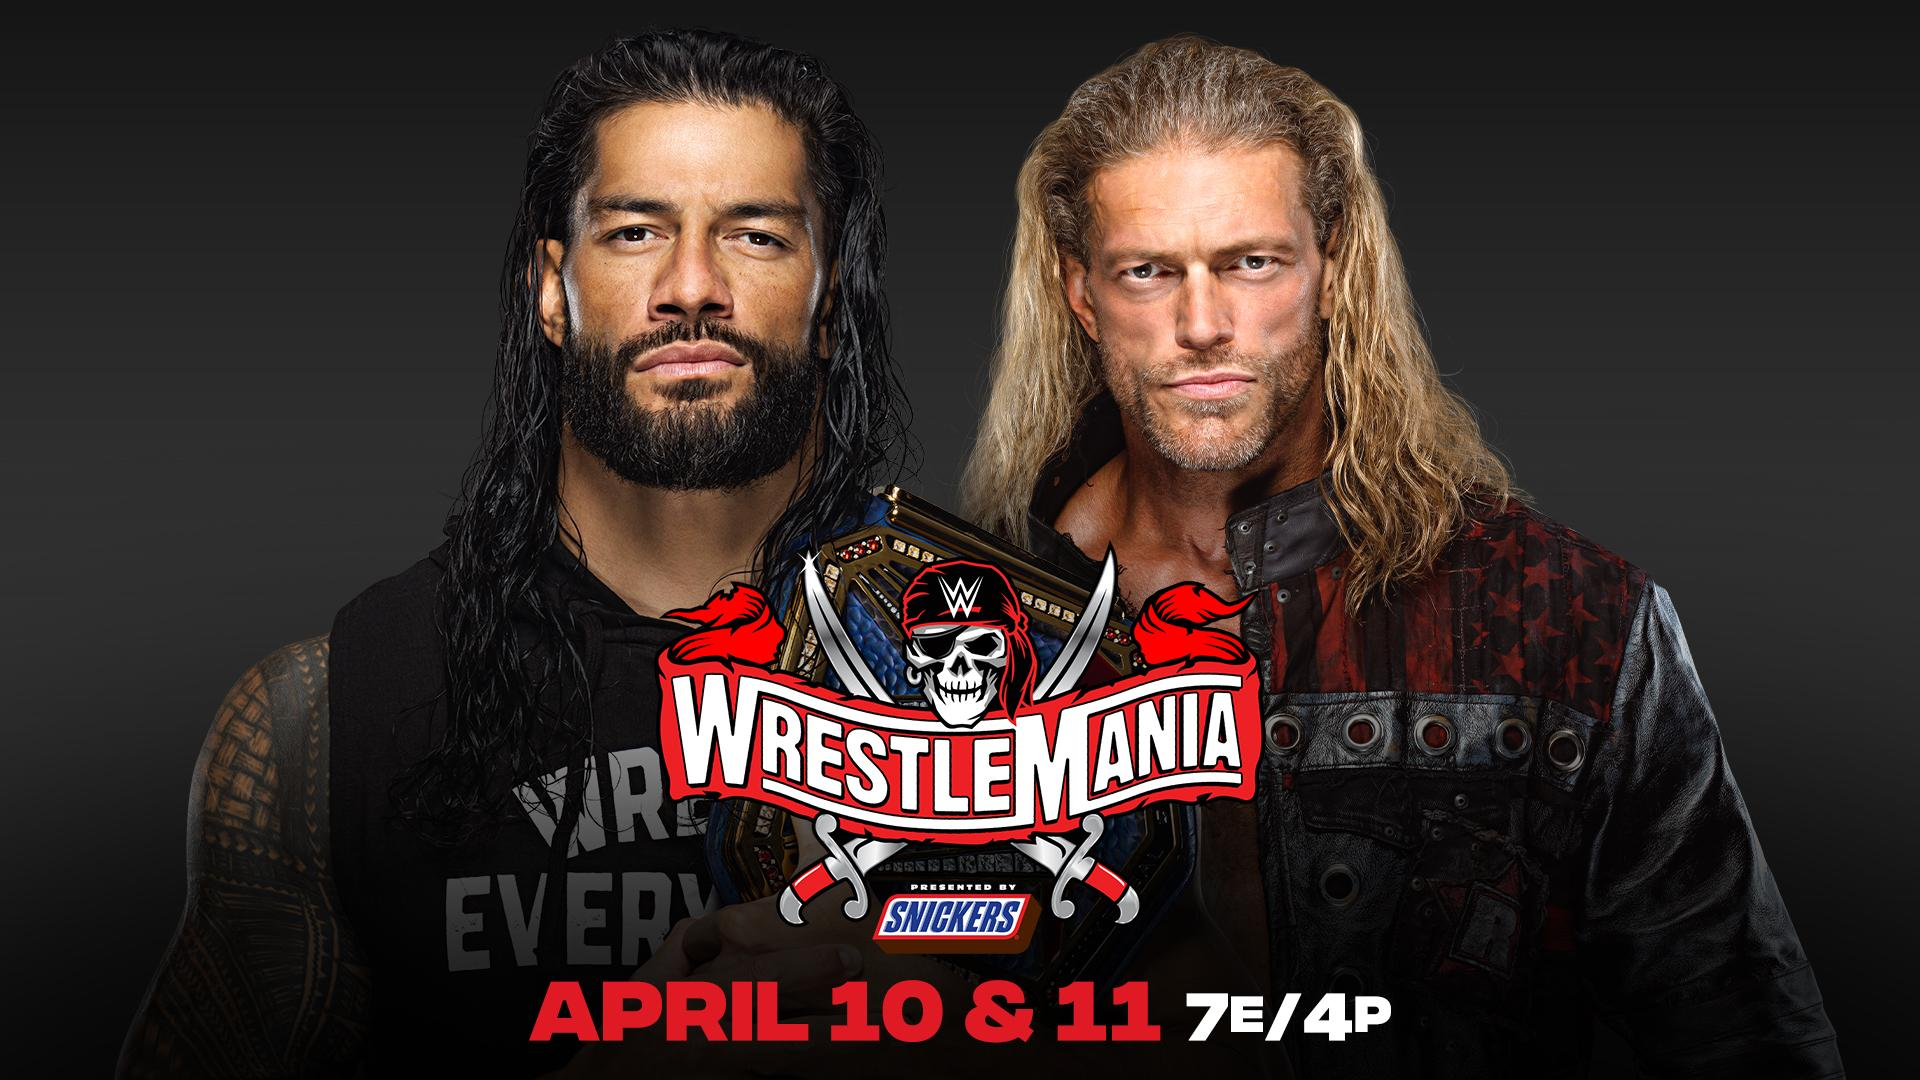 Roman Reigns vs. Edge Official for WrestleMania – TPWW